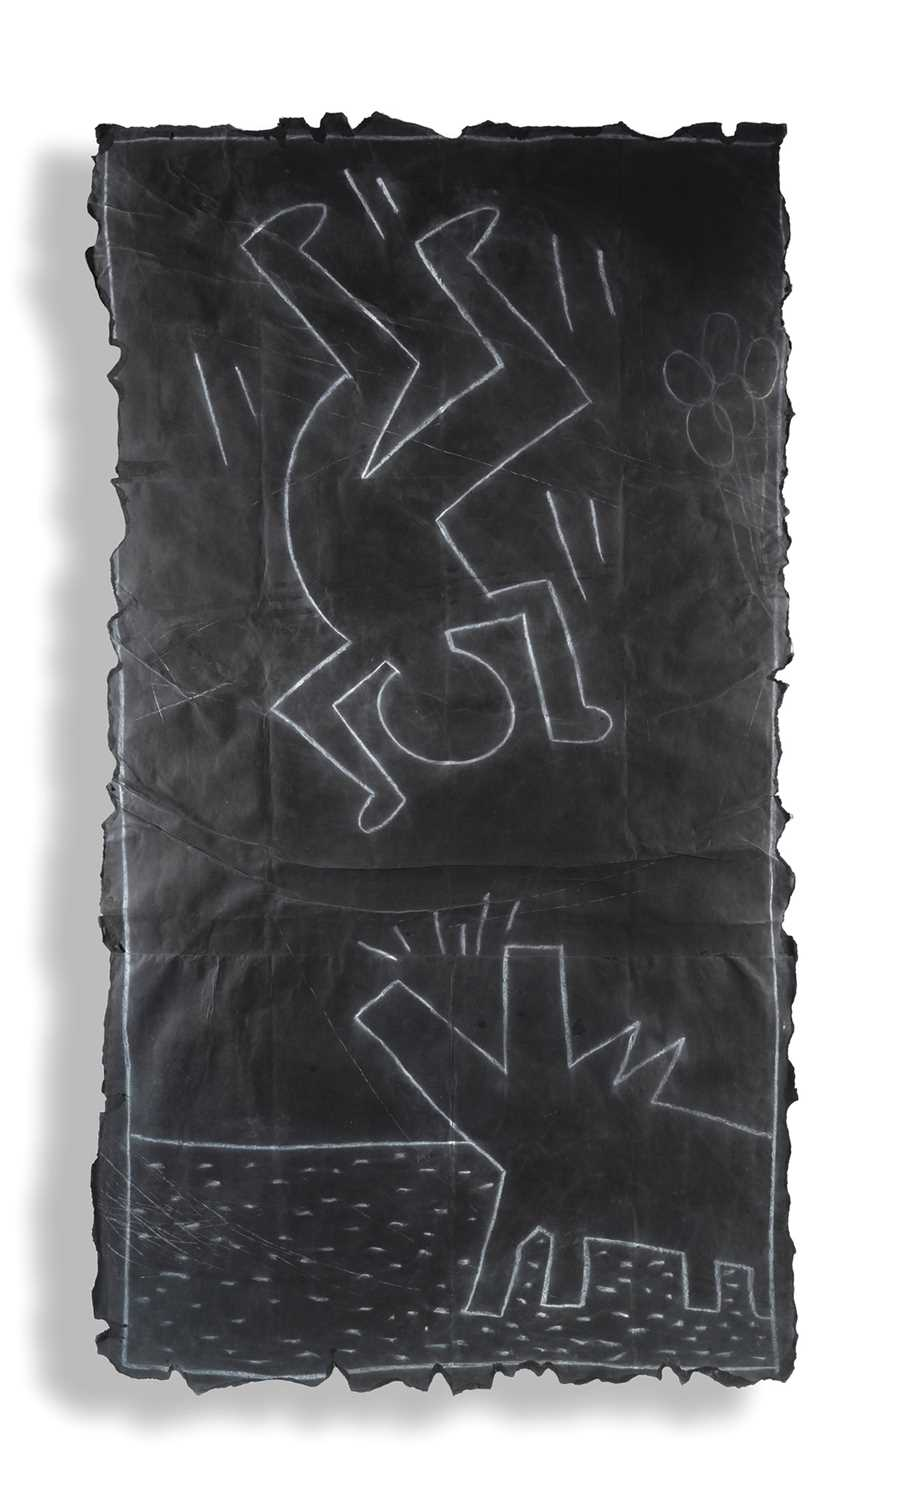 Lot 190 - Keith Haring (American 1958-1990), 'Untitled (Subway Drawing), 1980s